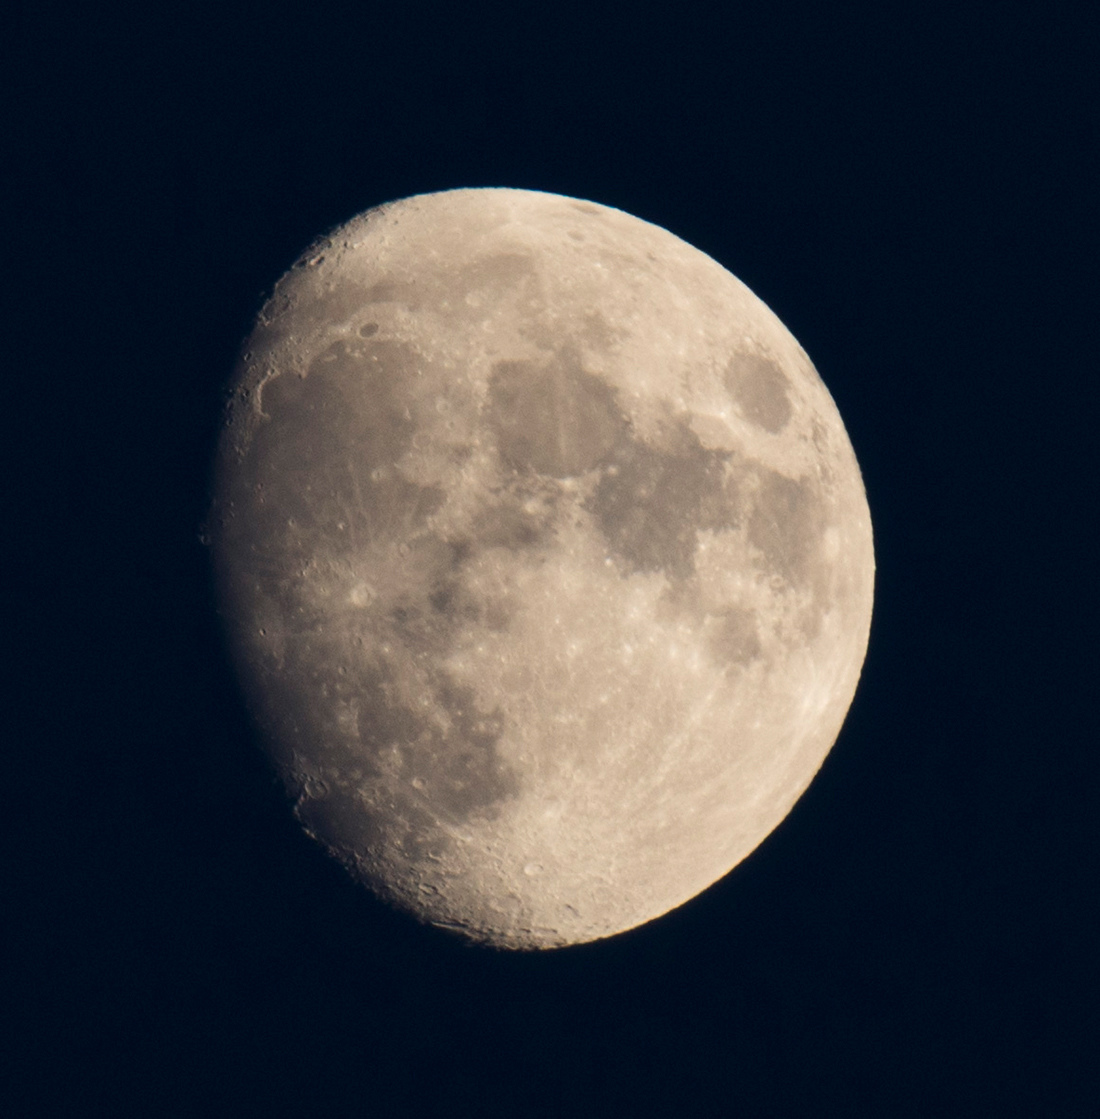 la lune le 08/11/2019(44066raw jpeg)